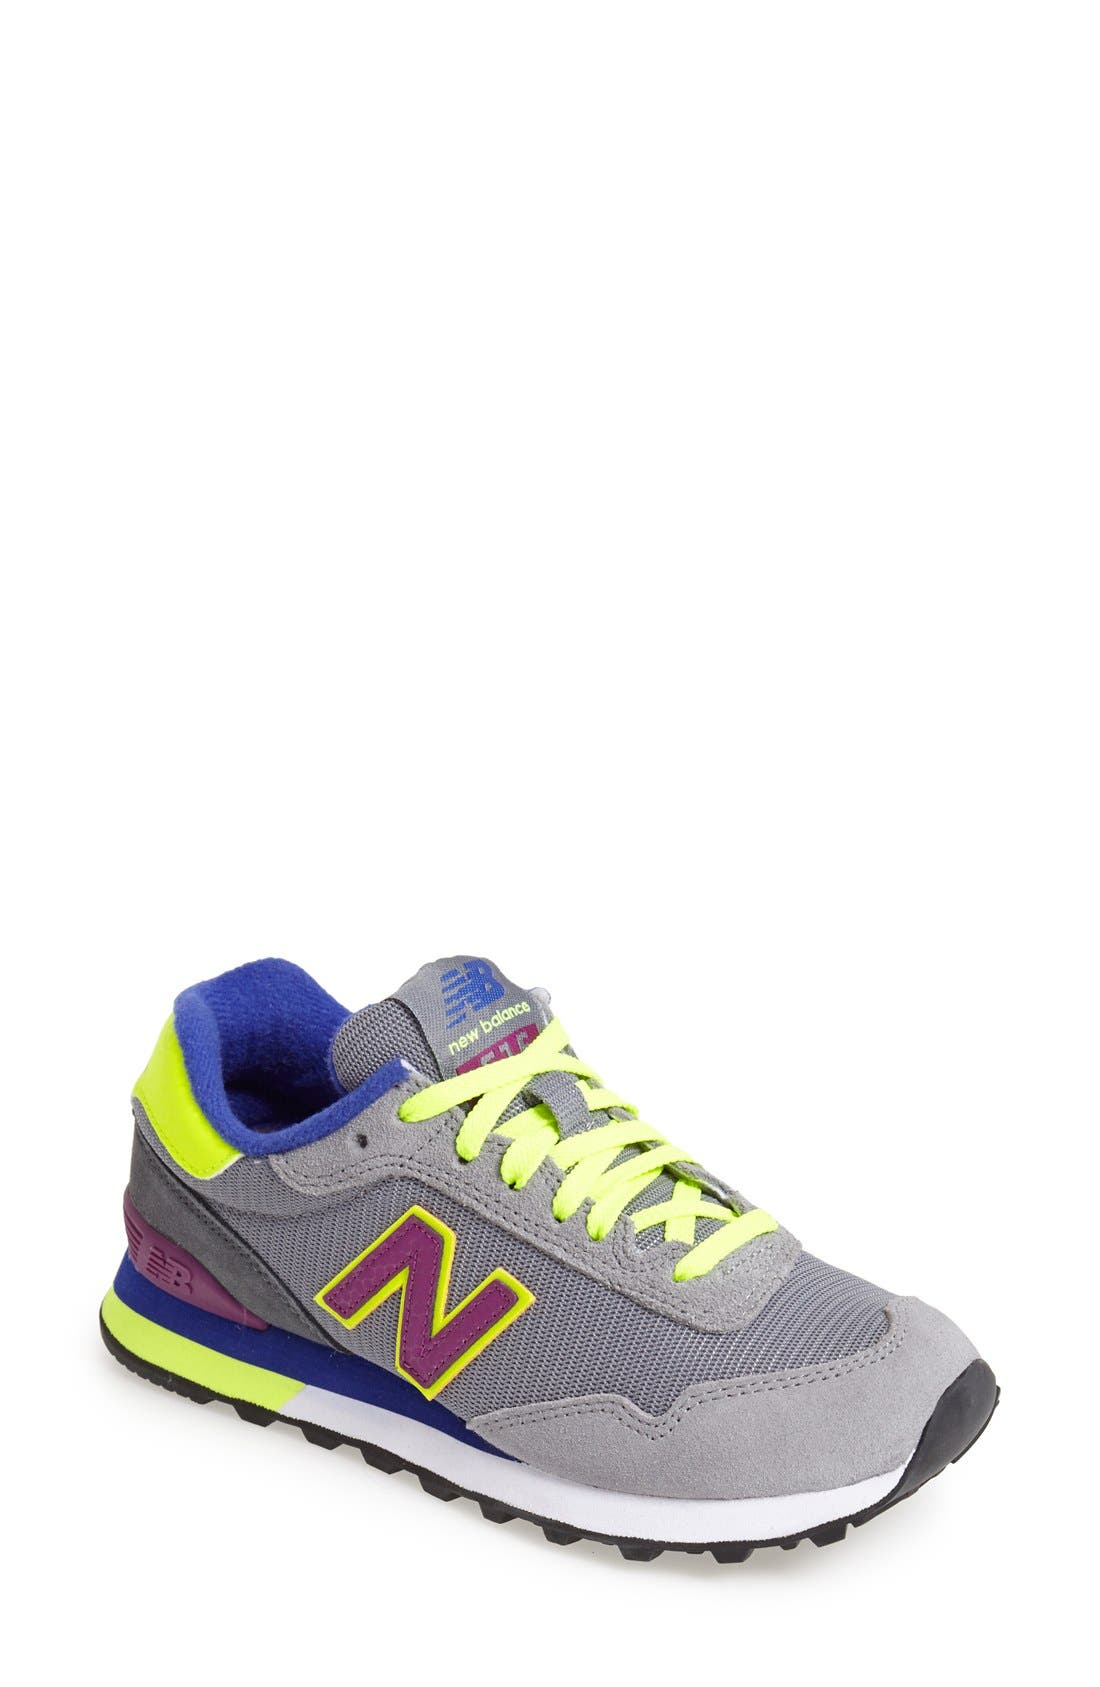 Alternate Image 1 Selected - New Balance '515' Sneaker (Women)